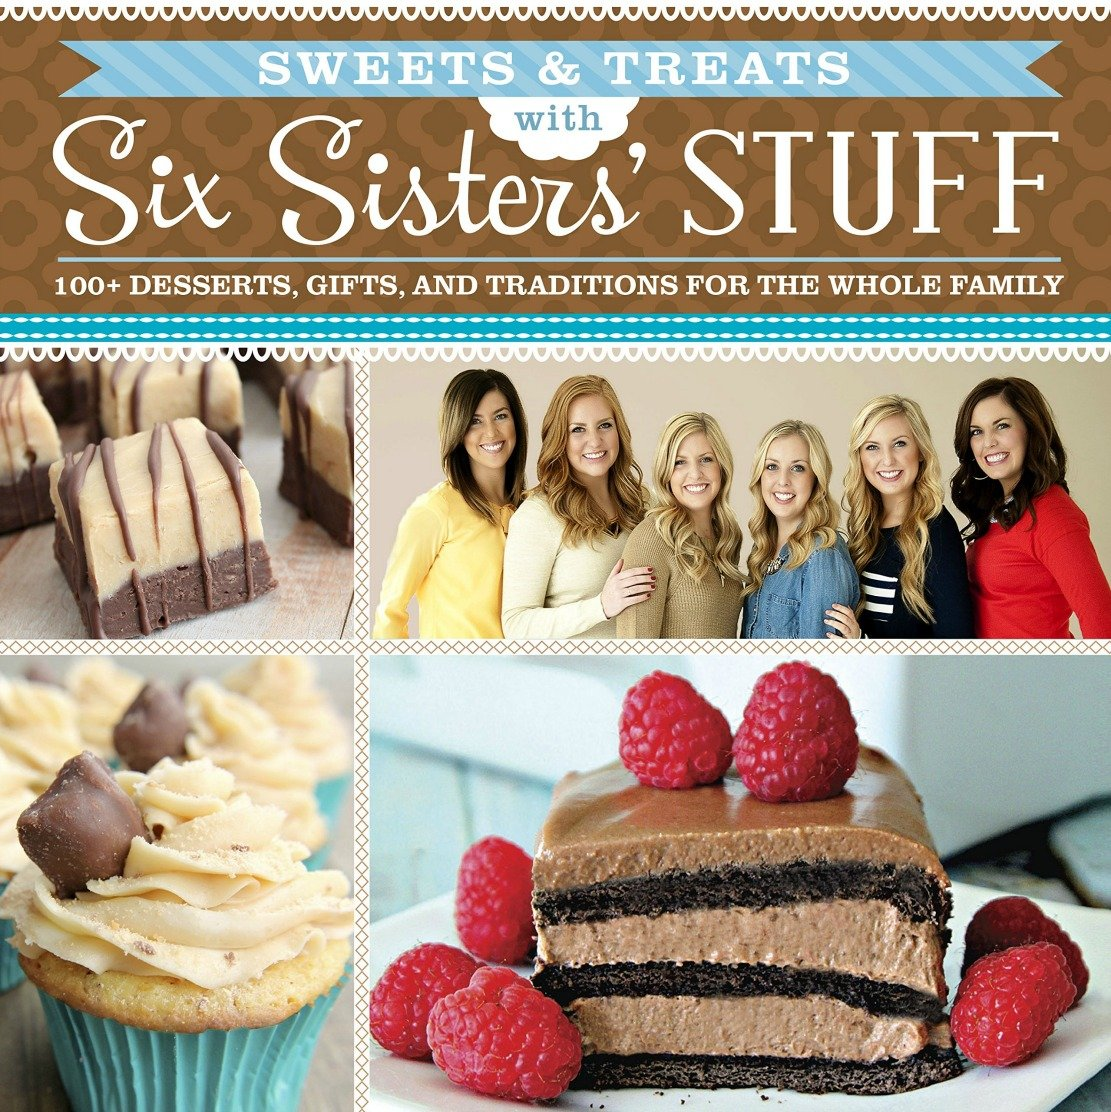 Pre-Order our New Cookbook Sweets and Treats with Six Sisters' Stuff